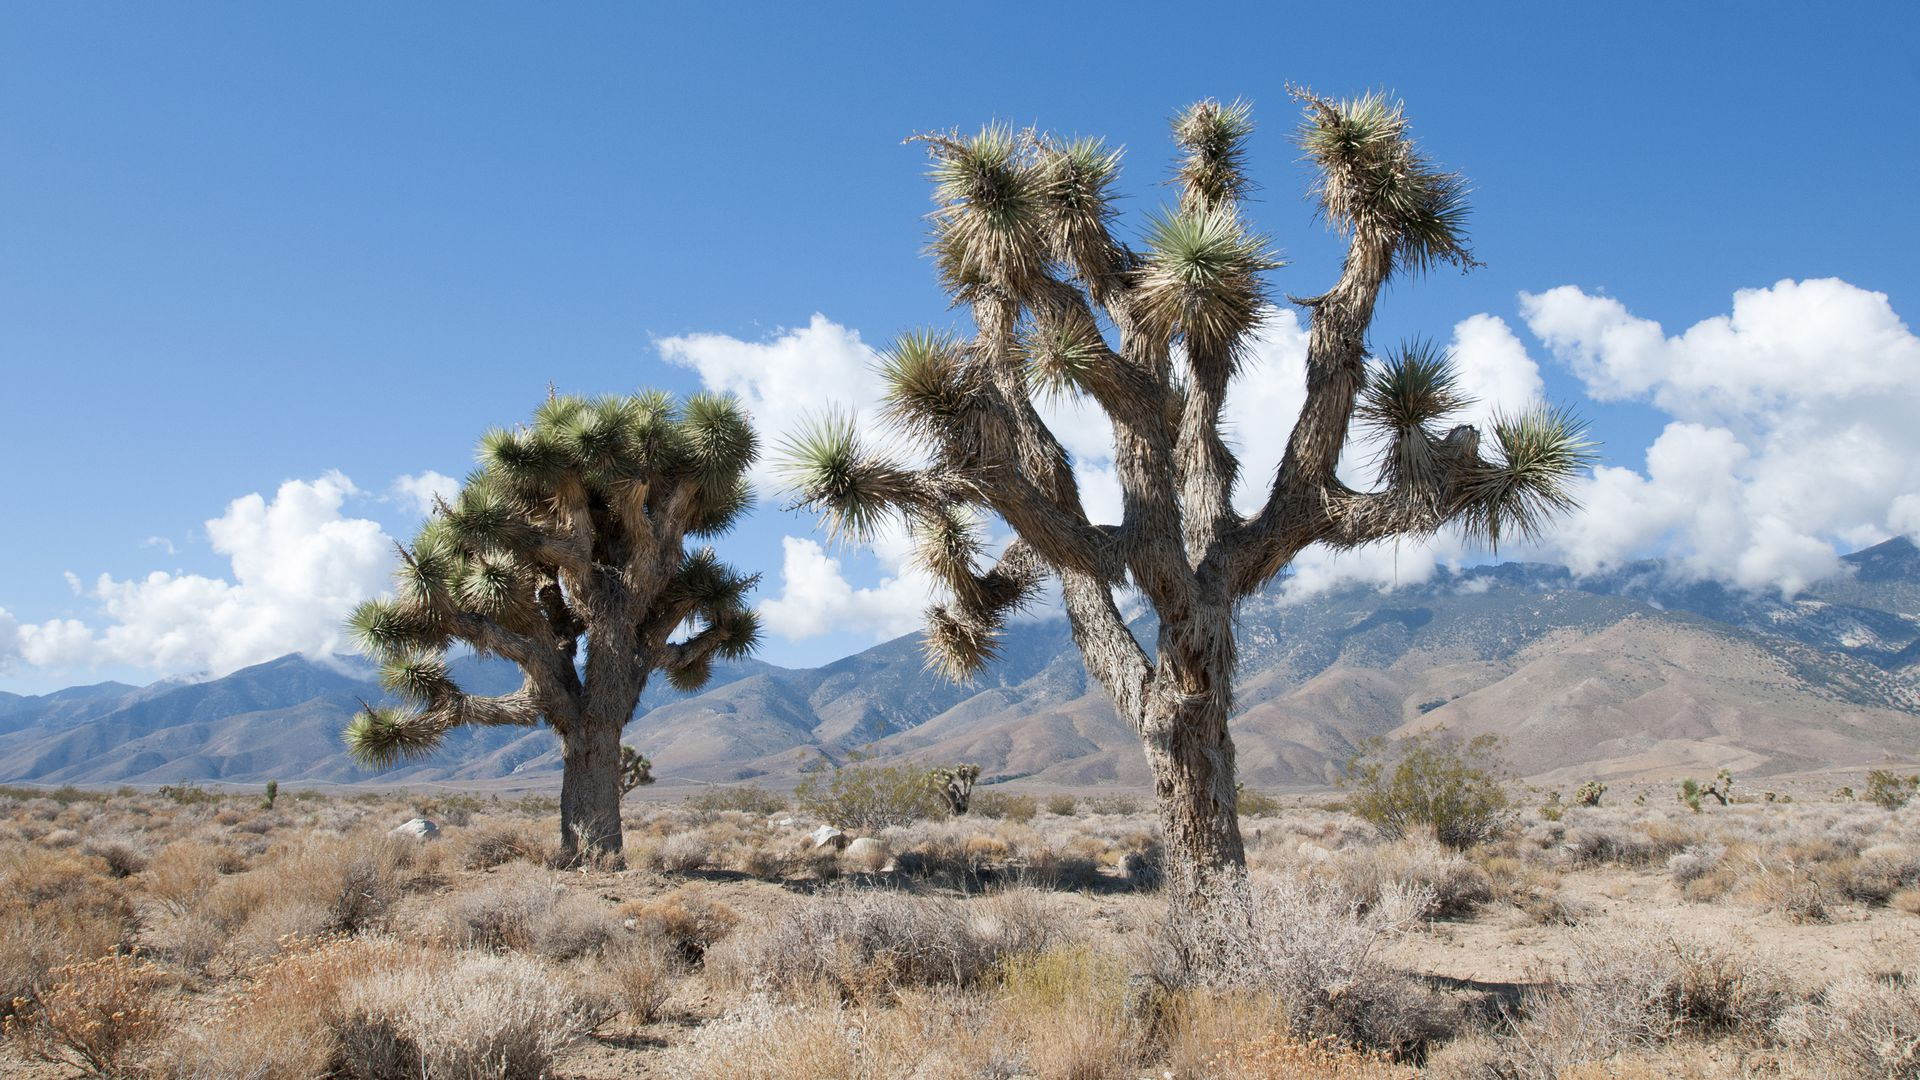 Joshua trees chopped down in unsupervised federal lands during government shutdown